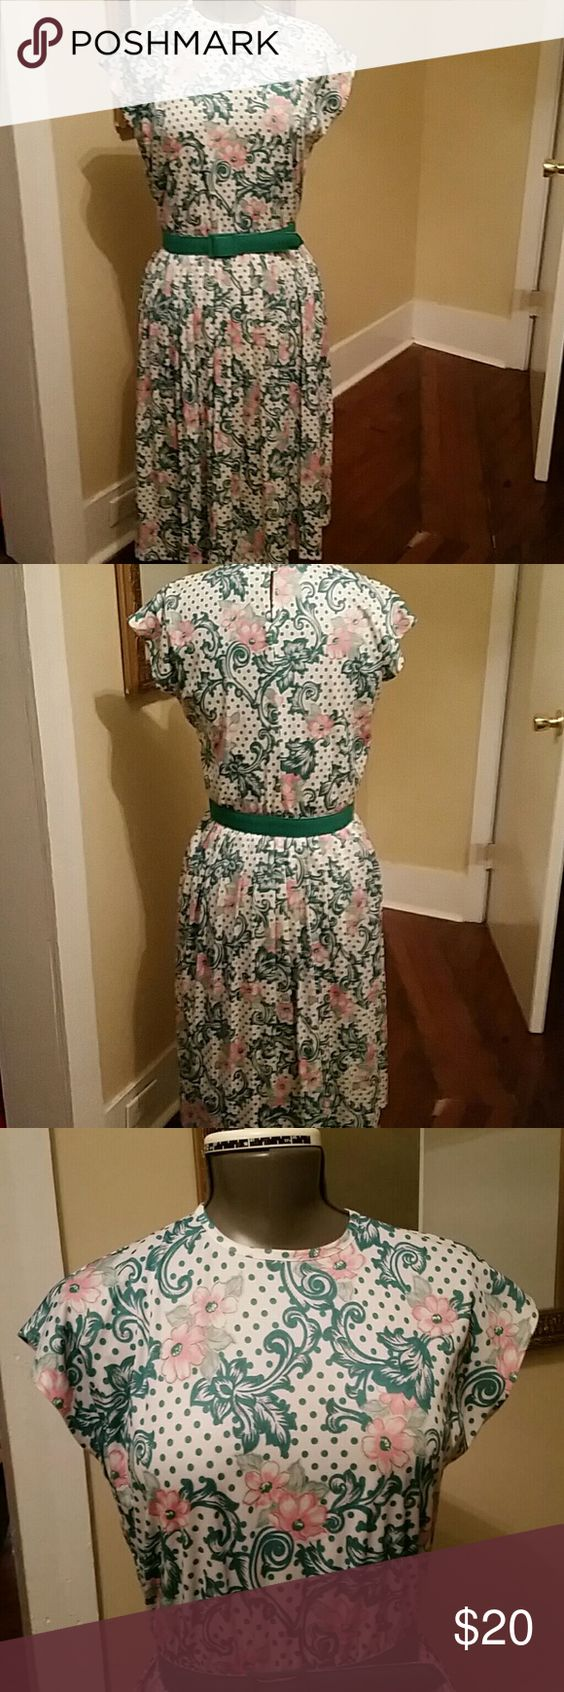 VINTAGE dress A floral and polka dot,  pink, green, and white vintage short sleeve dress. vintage  Dresses Midi